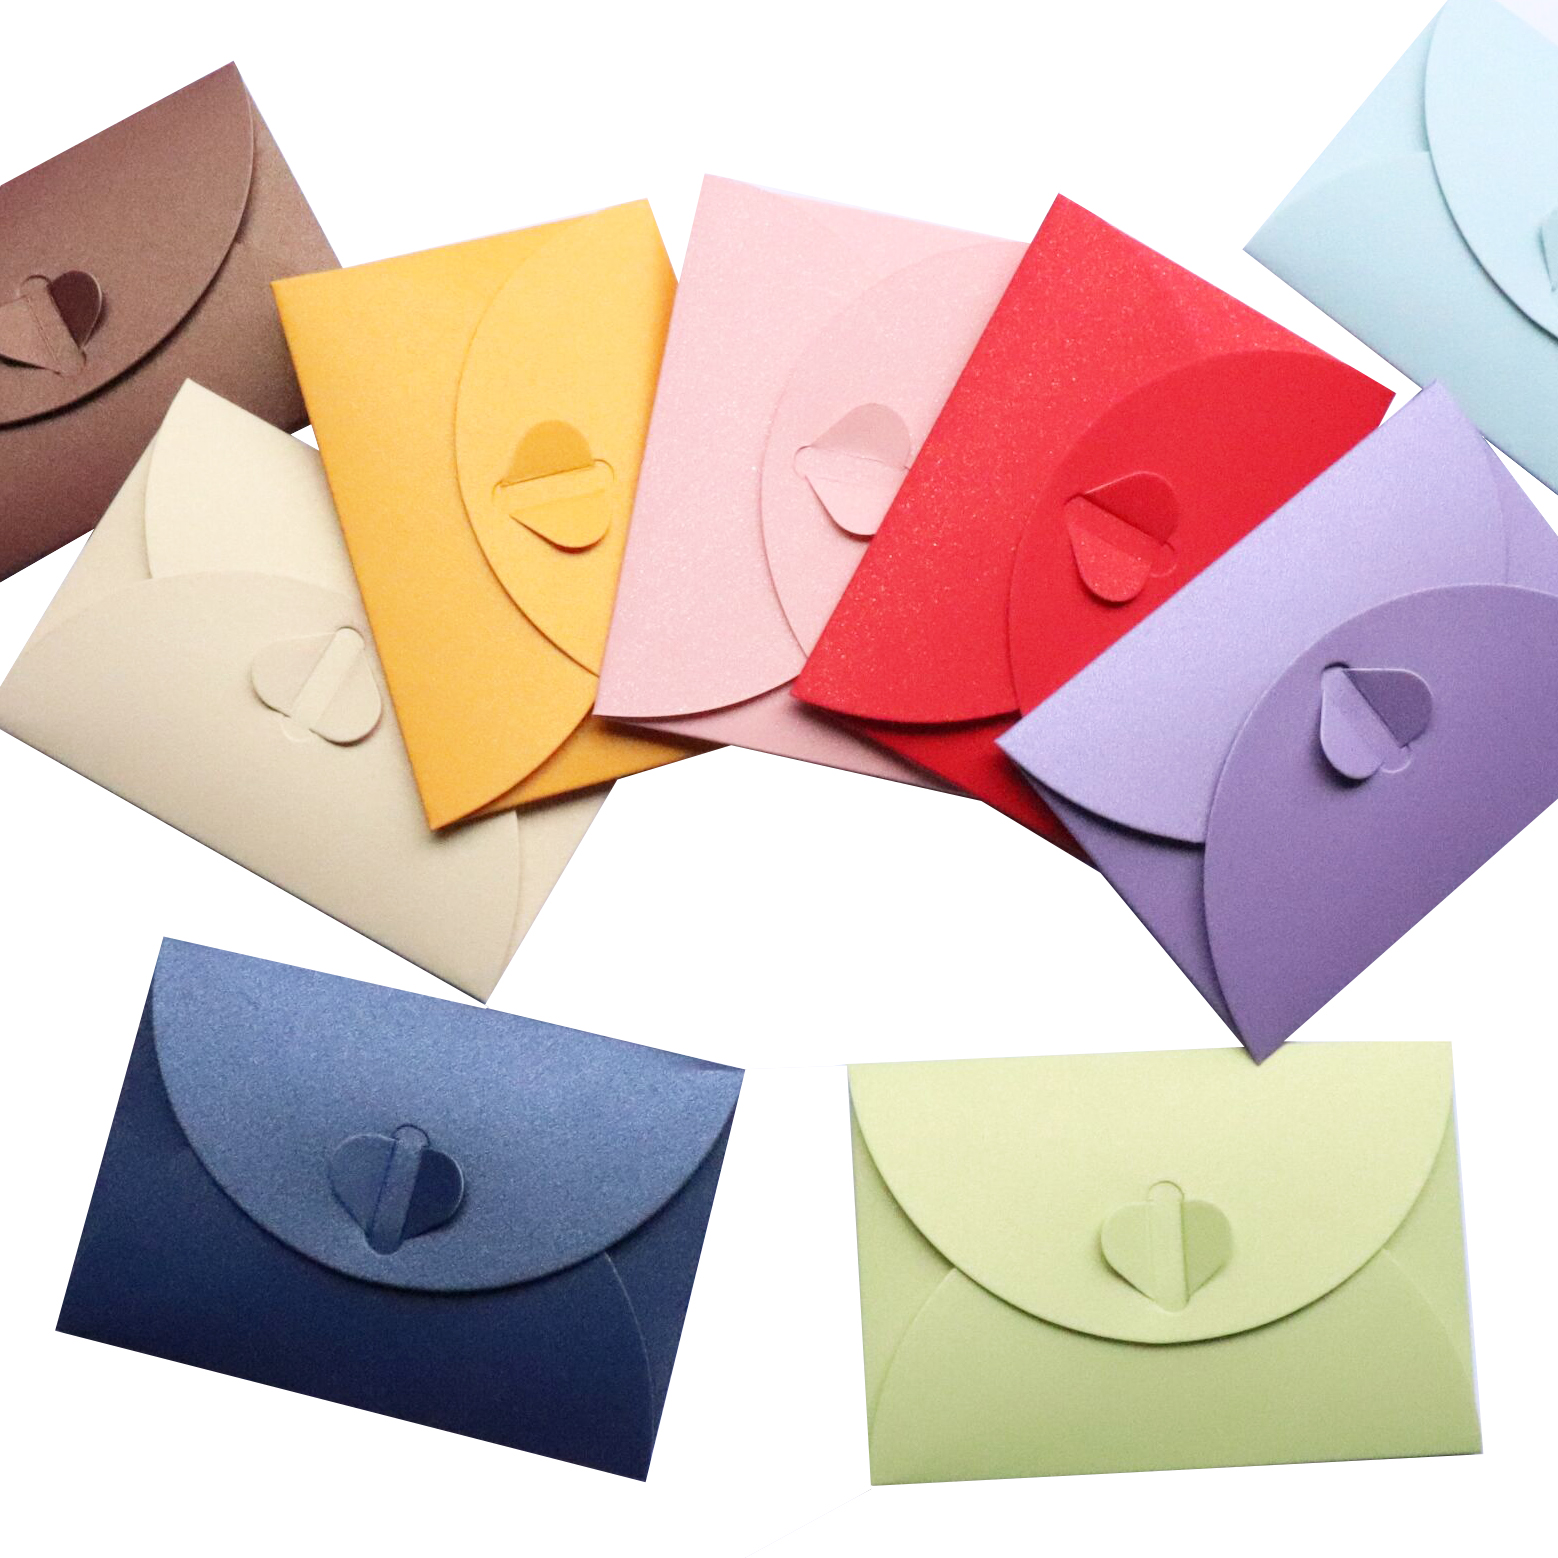 (10 Pieces/lot) 15.5*10.5cm Colorful Vintage Envelope Pearl Paper Envelopes Gift Greeting Card Invitation Card Letter Envelopes